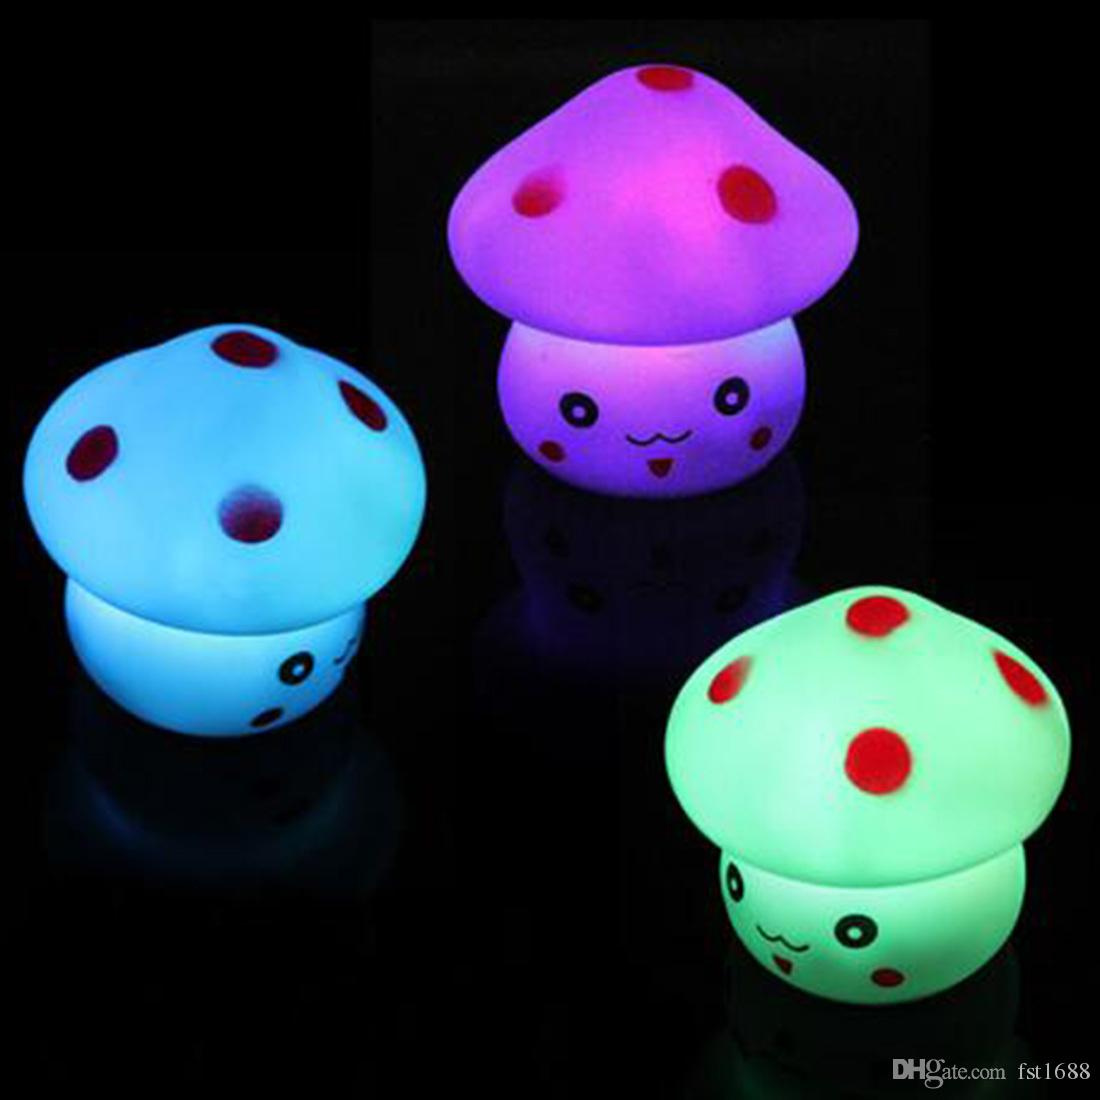 Creative Art New 1pc LED Night Light Colorful Mushroom Press Down Touch Room Desk Bedside Lamp for Baby Kids Christmas Gifts Interior Design